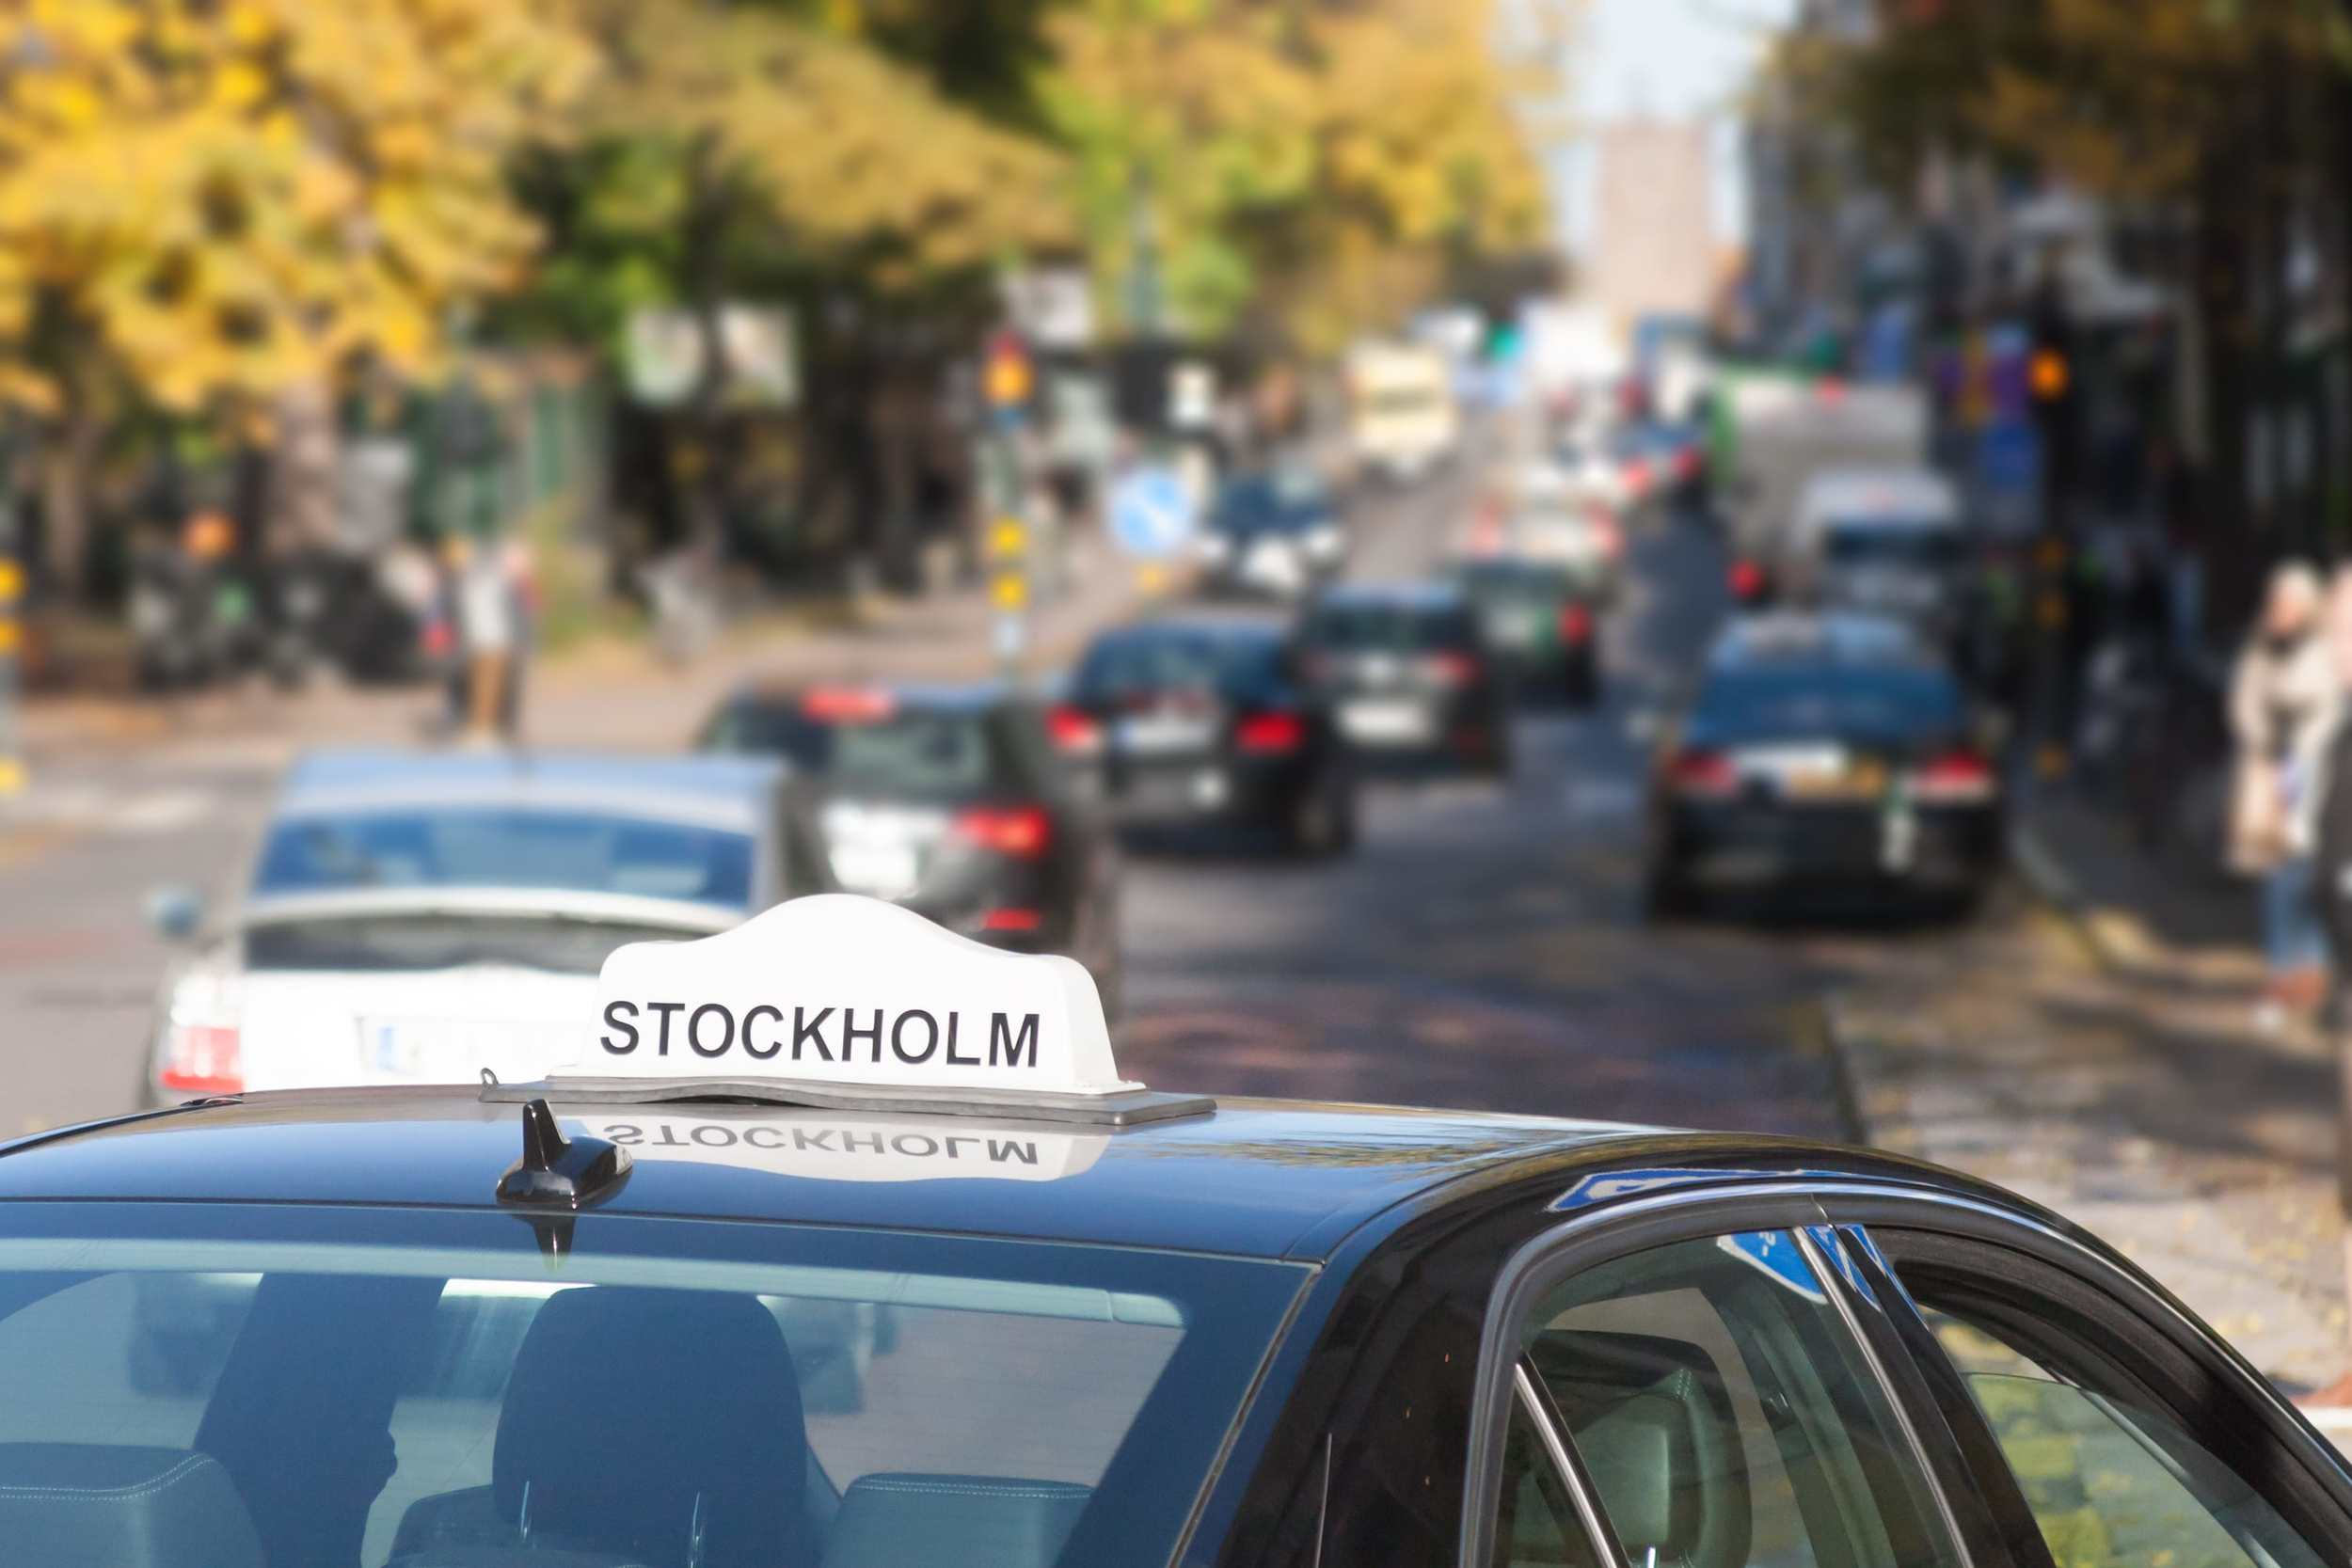 Are taxis safe in Sweden